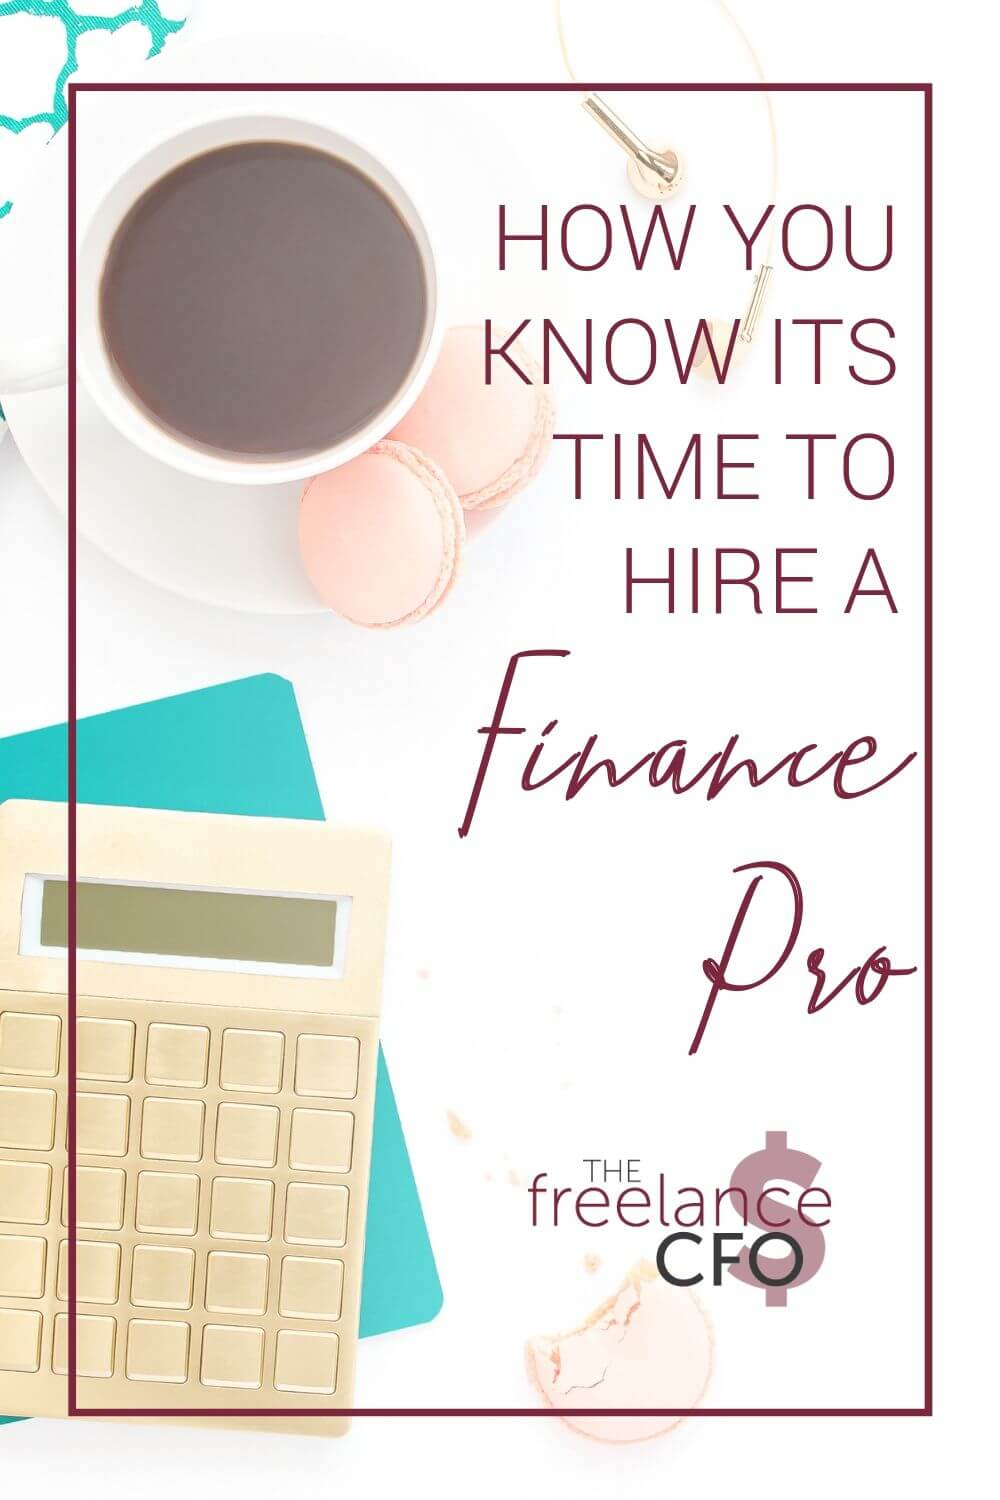 Even if your freelance business isn't your full time career, there is a certain amount of financial planning you need to do in order to have your ducks in a row come tax time. Here are the signs you're at the point where you need to hire a pro.